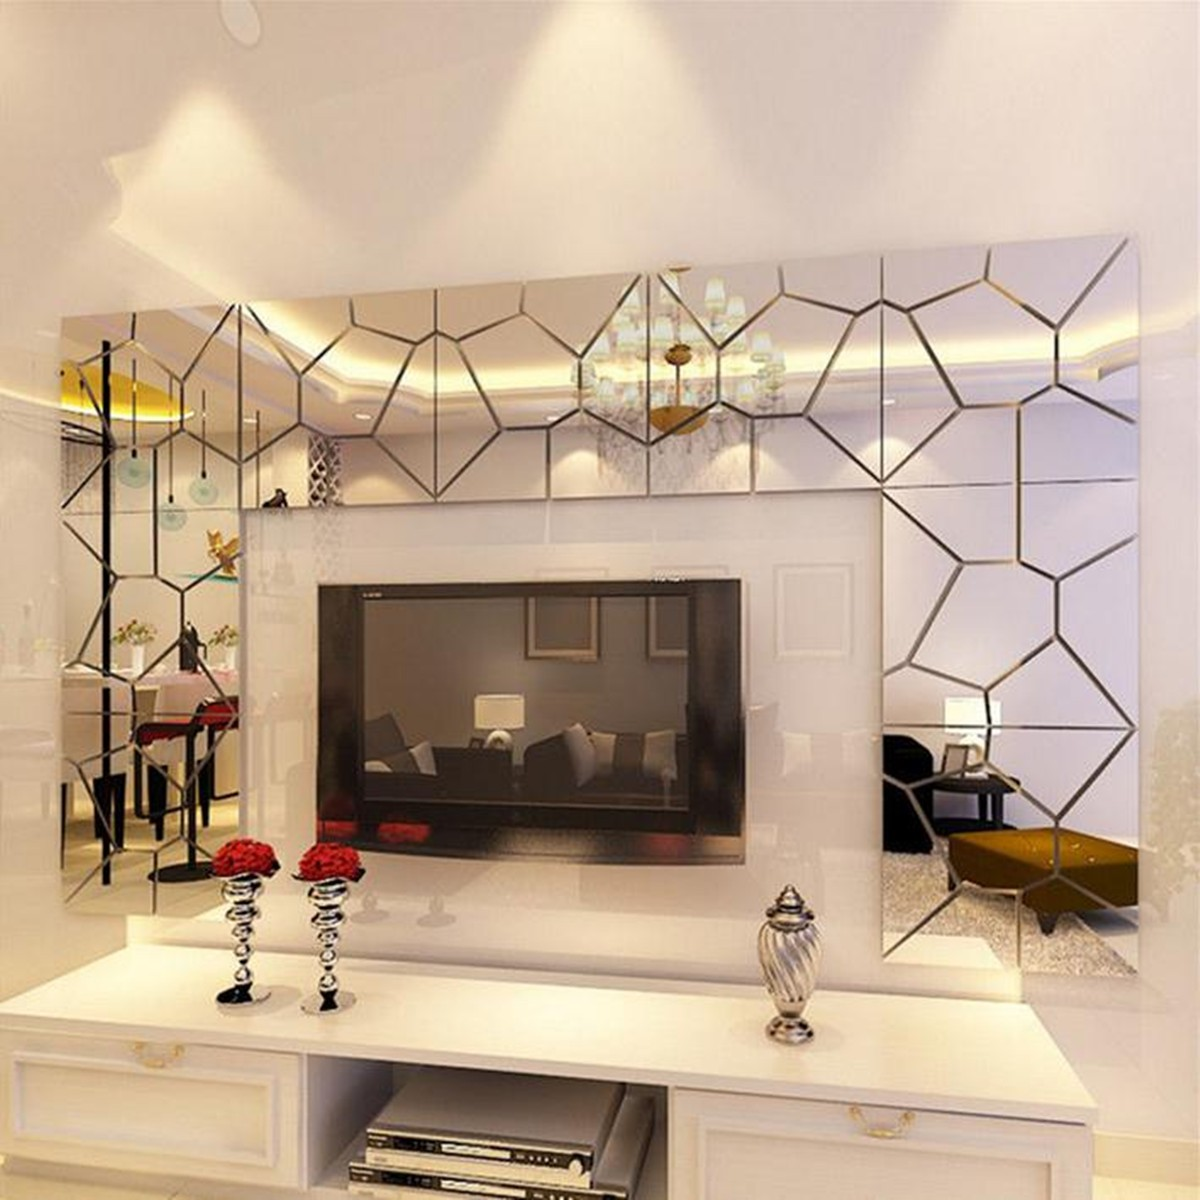 7pcs 3D Acrylic Removable Modern Mirror Decal Art Mural Wall Sticker Home Room Decor DIY